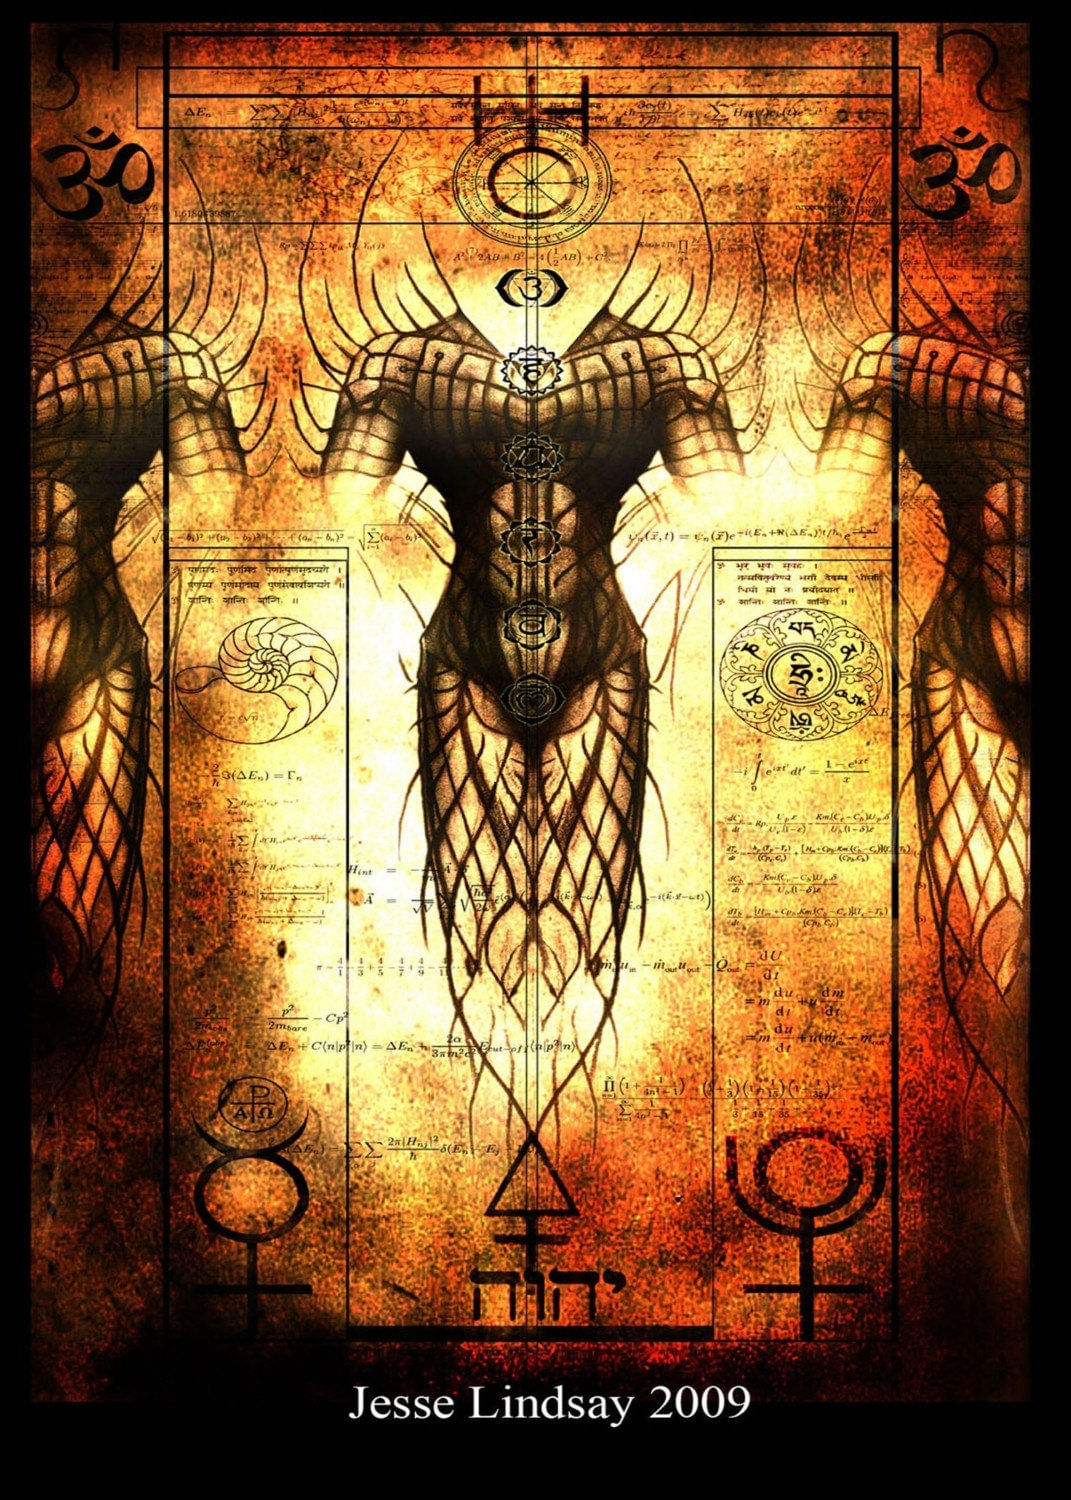 Alchemical Reaction 11 x 17 Inch Print by Jesse Lindsay - jesselindsay